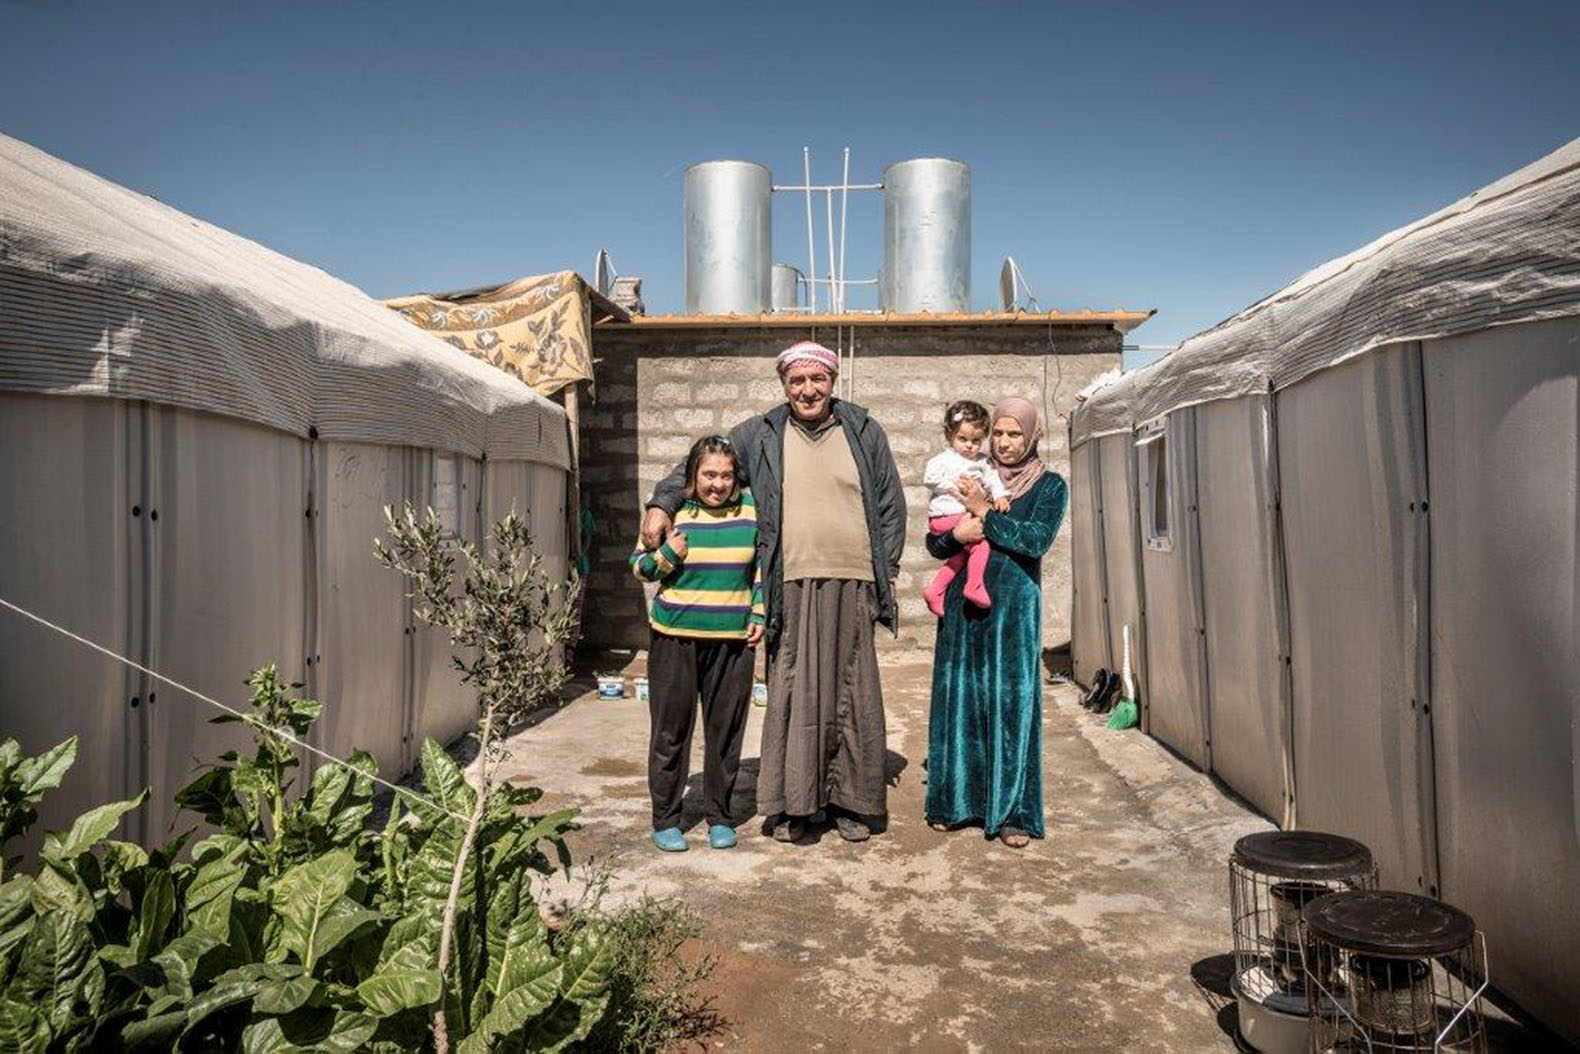 IKEA's Modular Better Shelter Housing Unit is a solar-powered emergency home for refugees